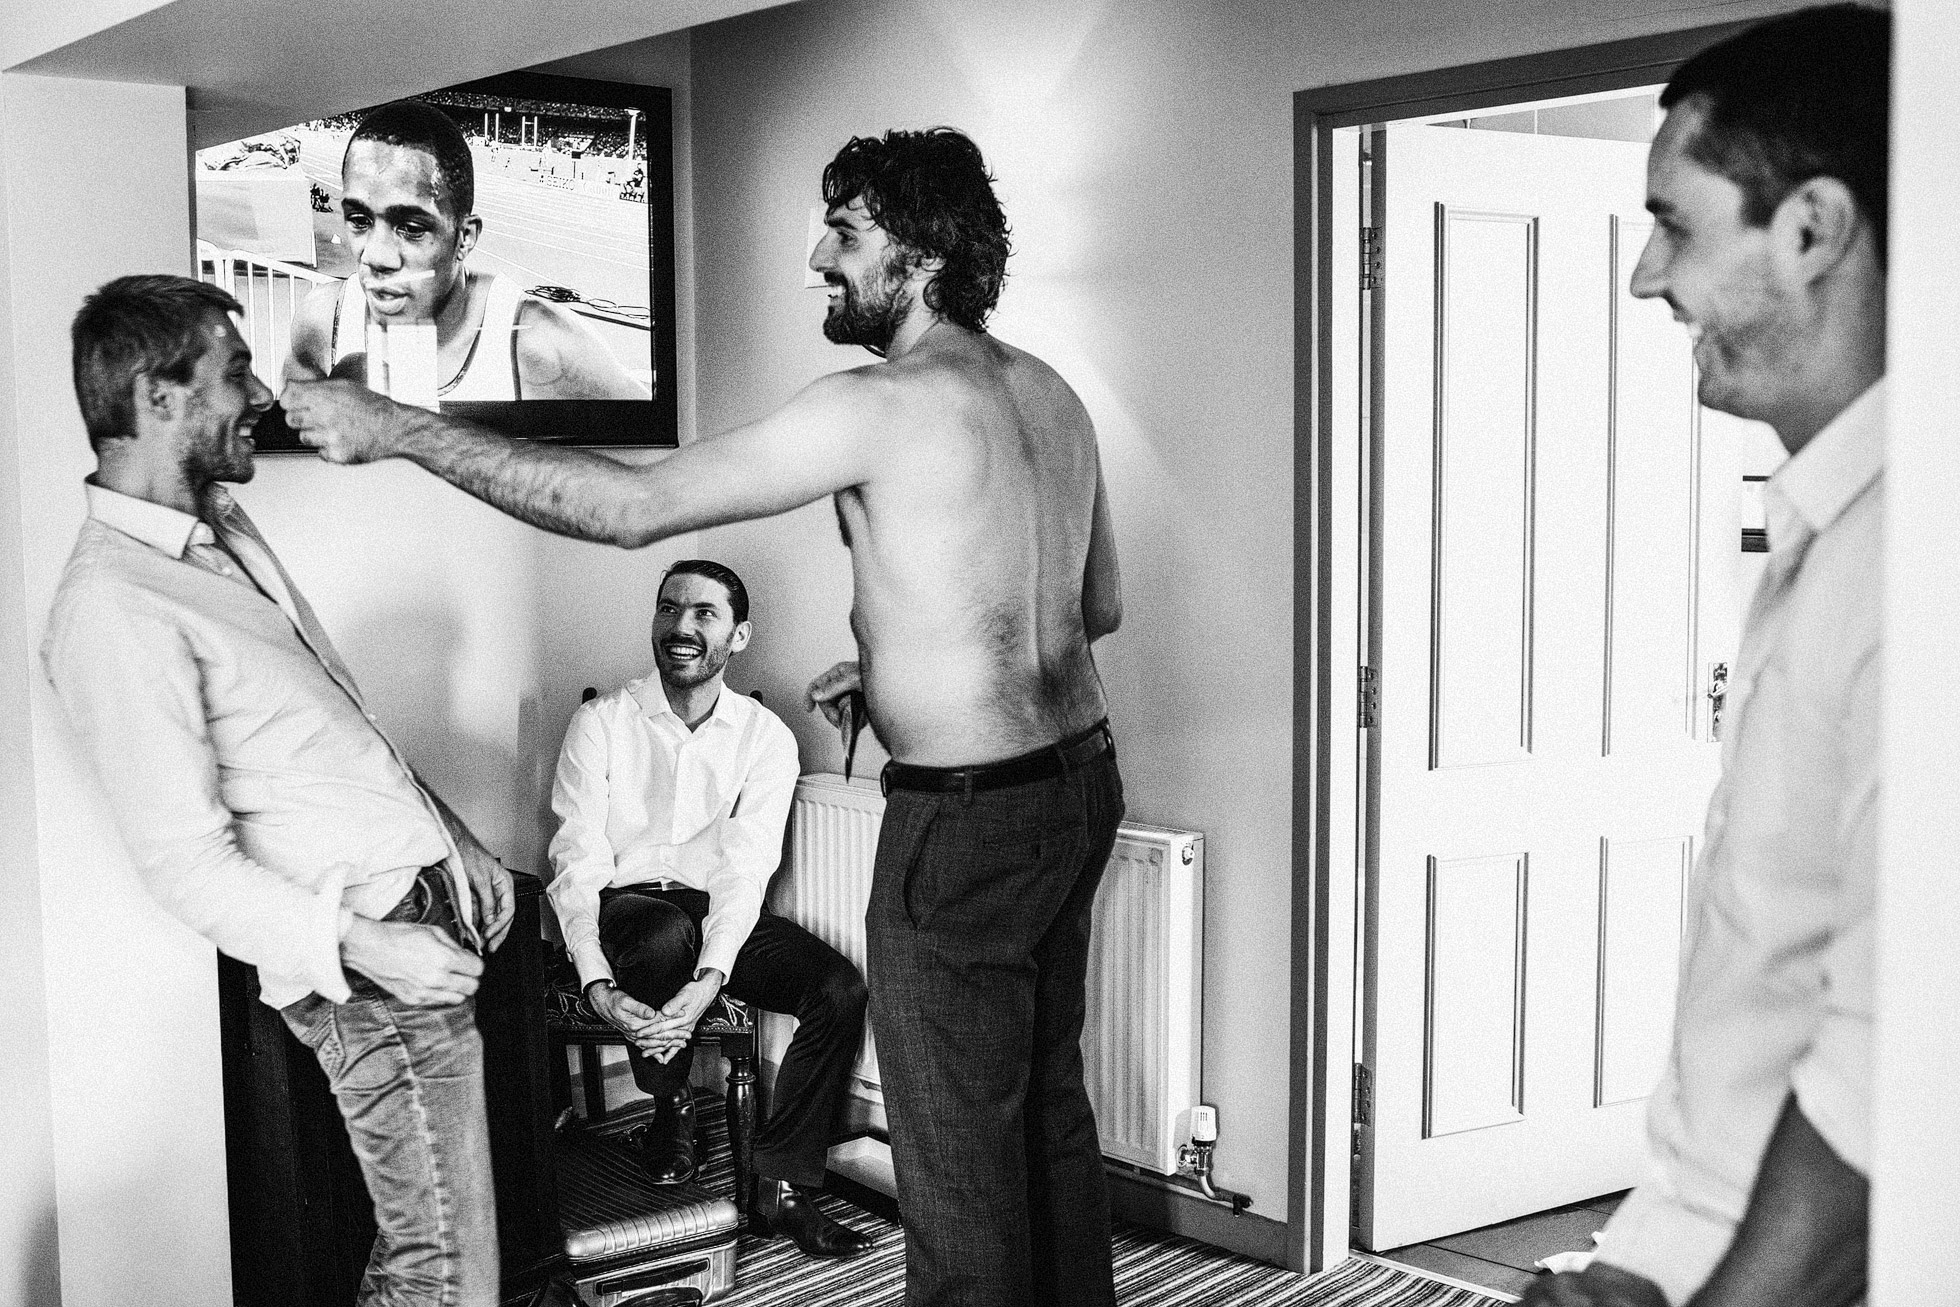 Black and White Documentary Photography